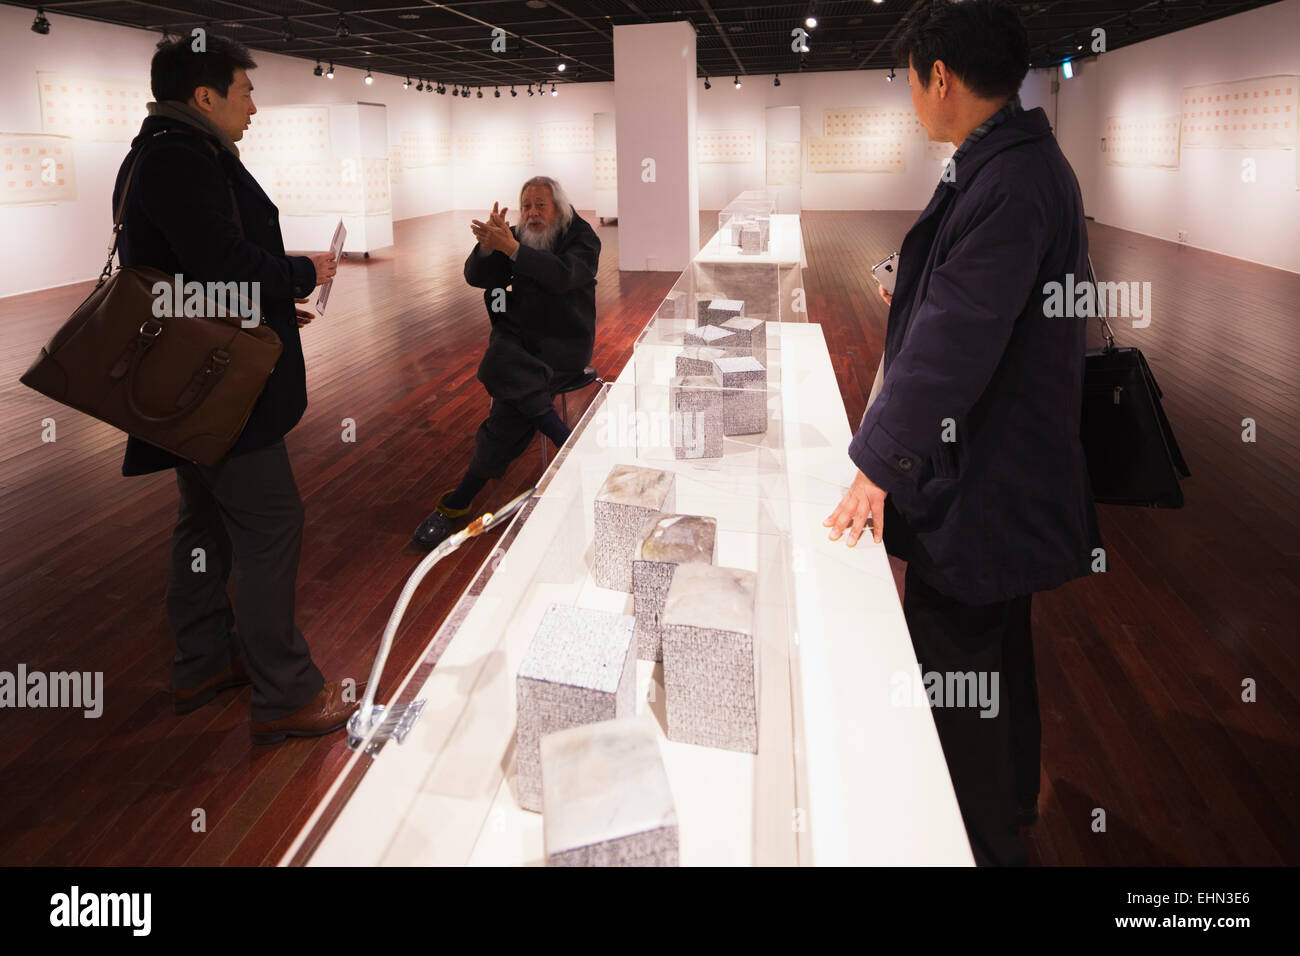 Asia, Republic of Korea, South Korea, Seoul, exhibition of a stone engraver - Stock Image